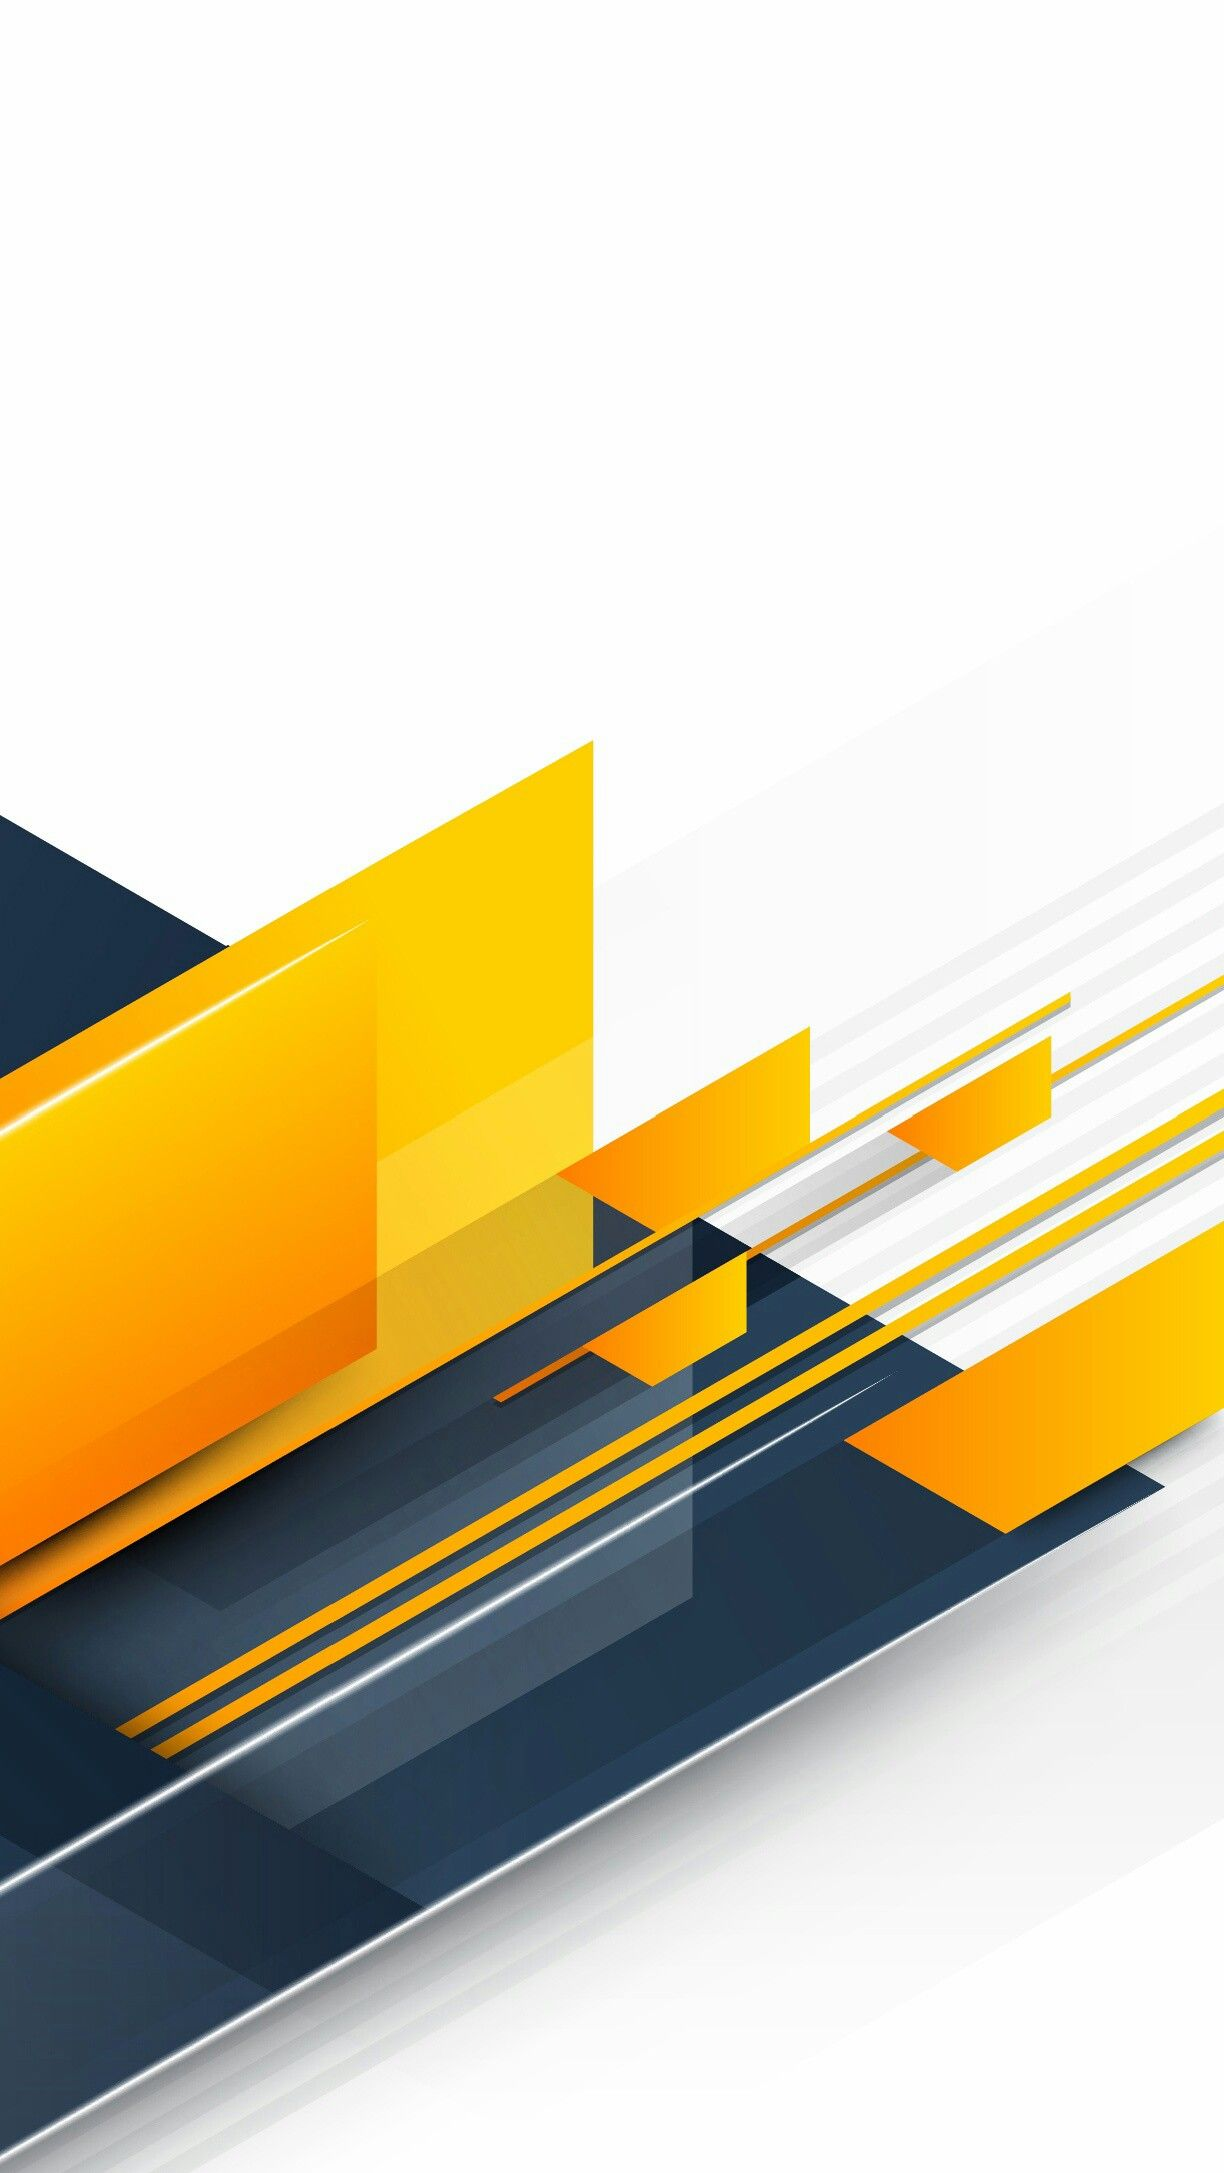 Material design abstract backgrounds minimal yellowwall androidwallpaper wallpapertumblr wallpaperforme phone wallpaper images mobile also pin by darling leo on darlz in pinterest geometry rh